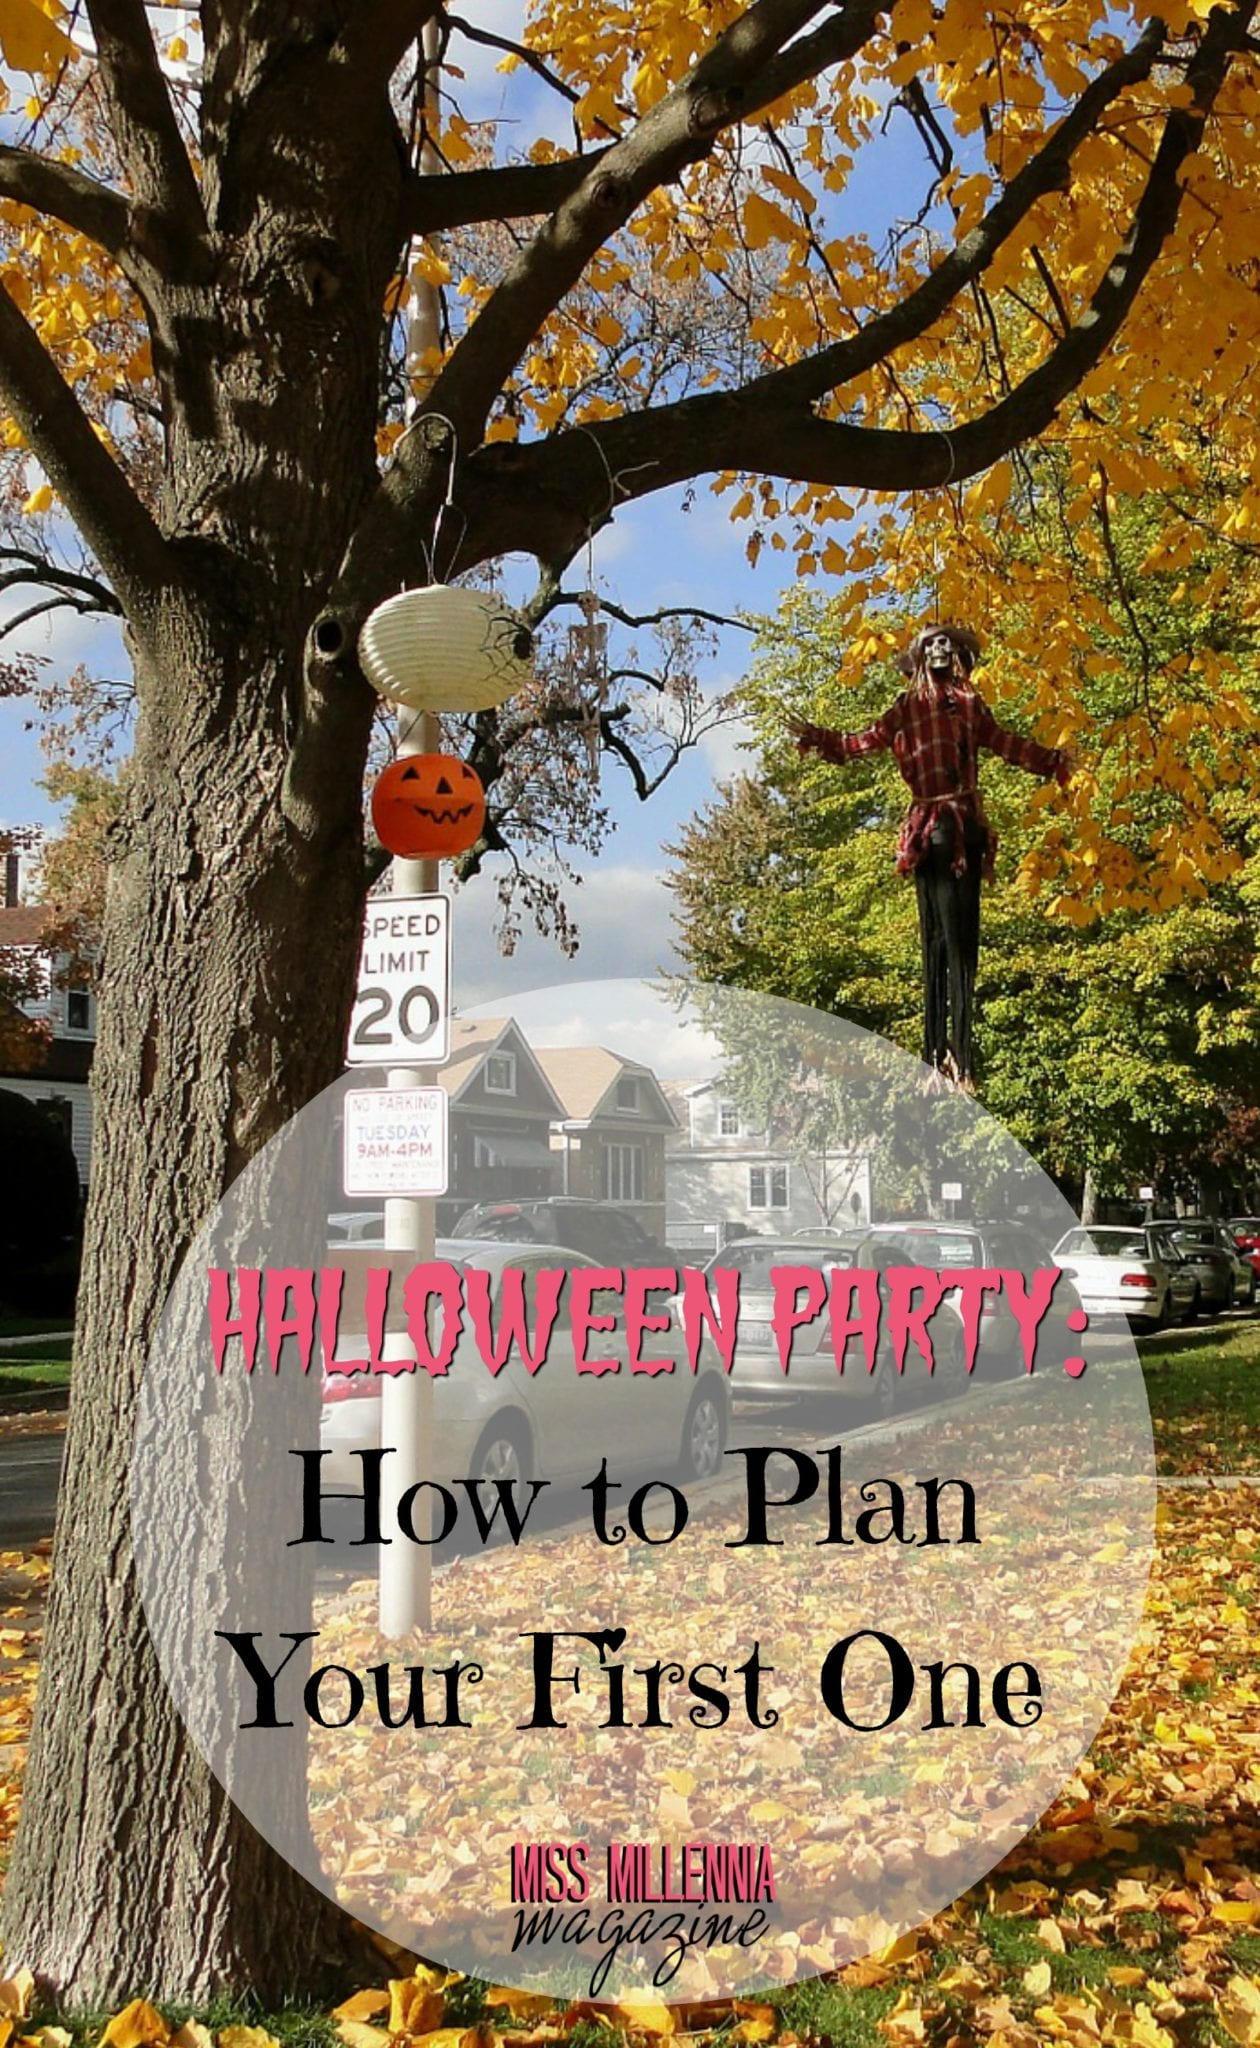 halloween-party-how-to-plan-your-first-one